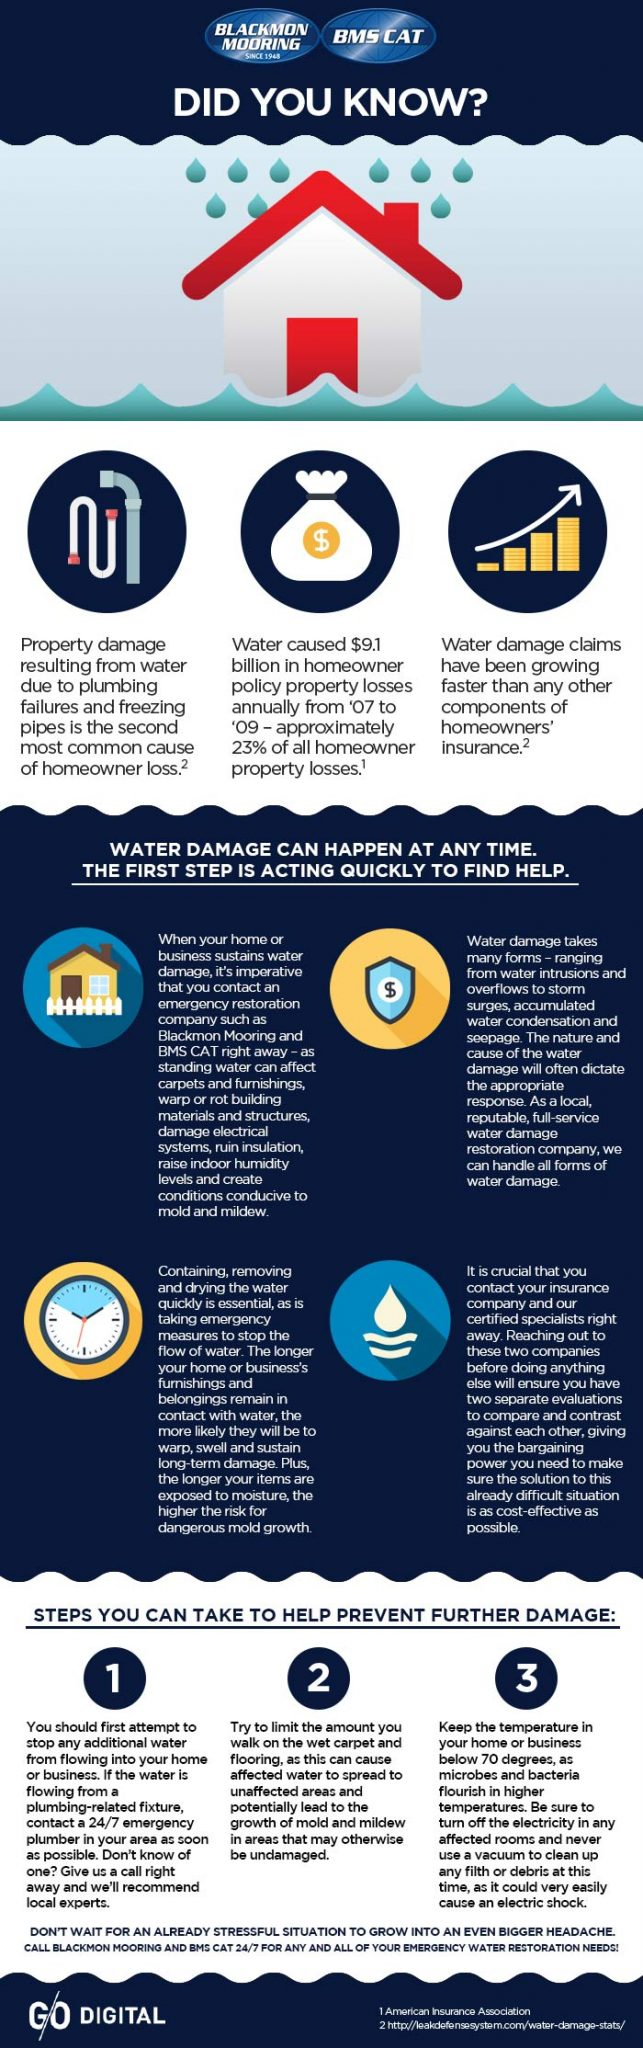 Water Damage Facts and Information